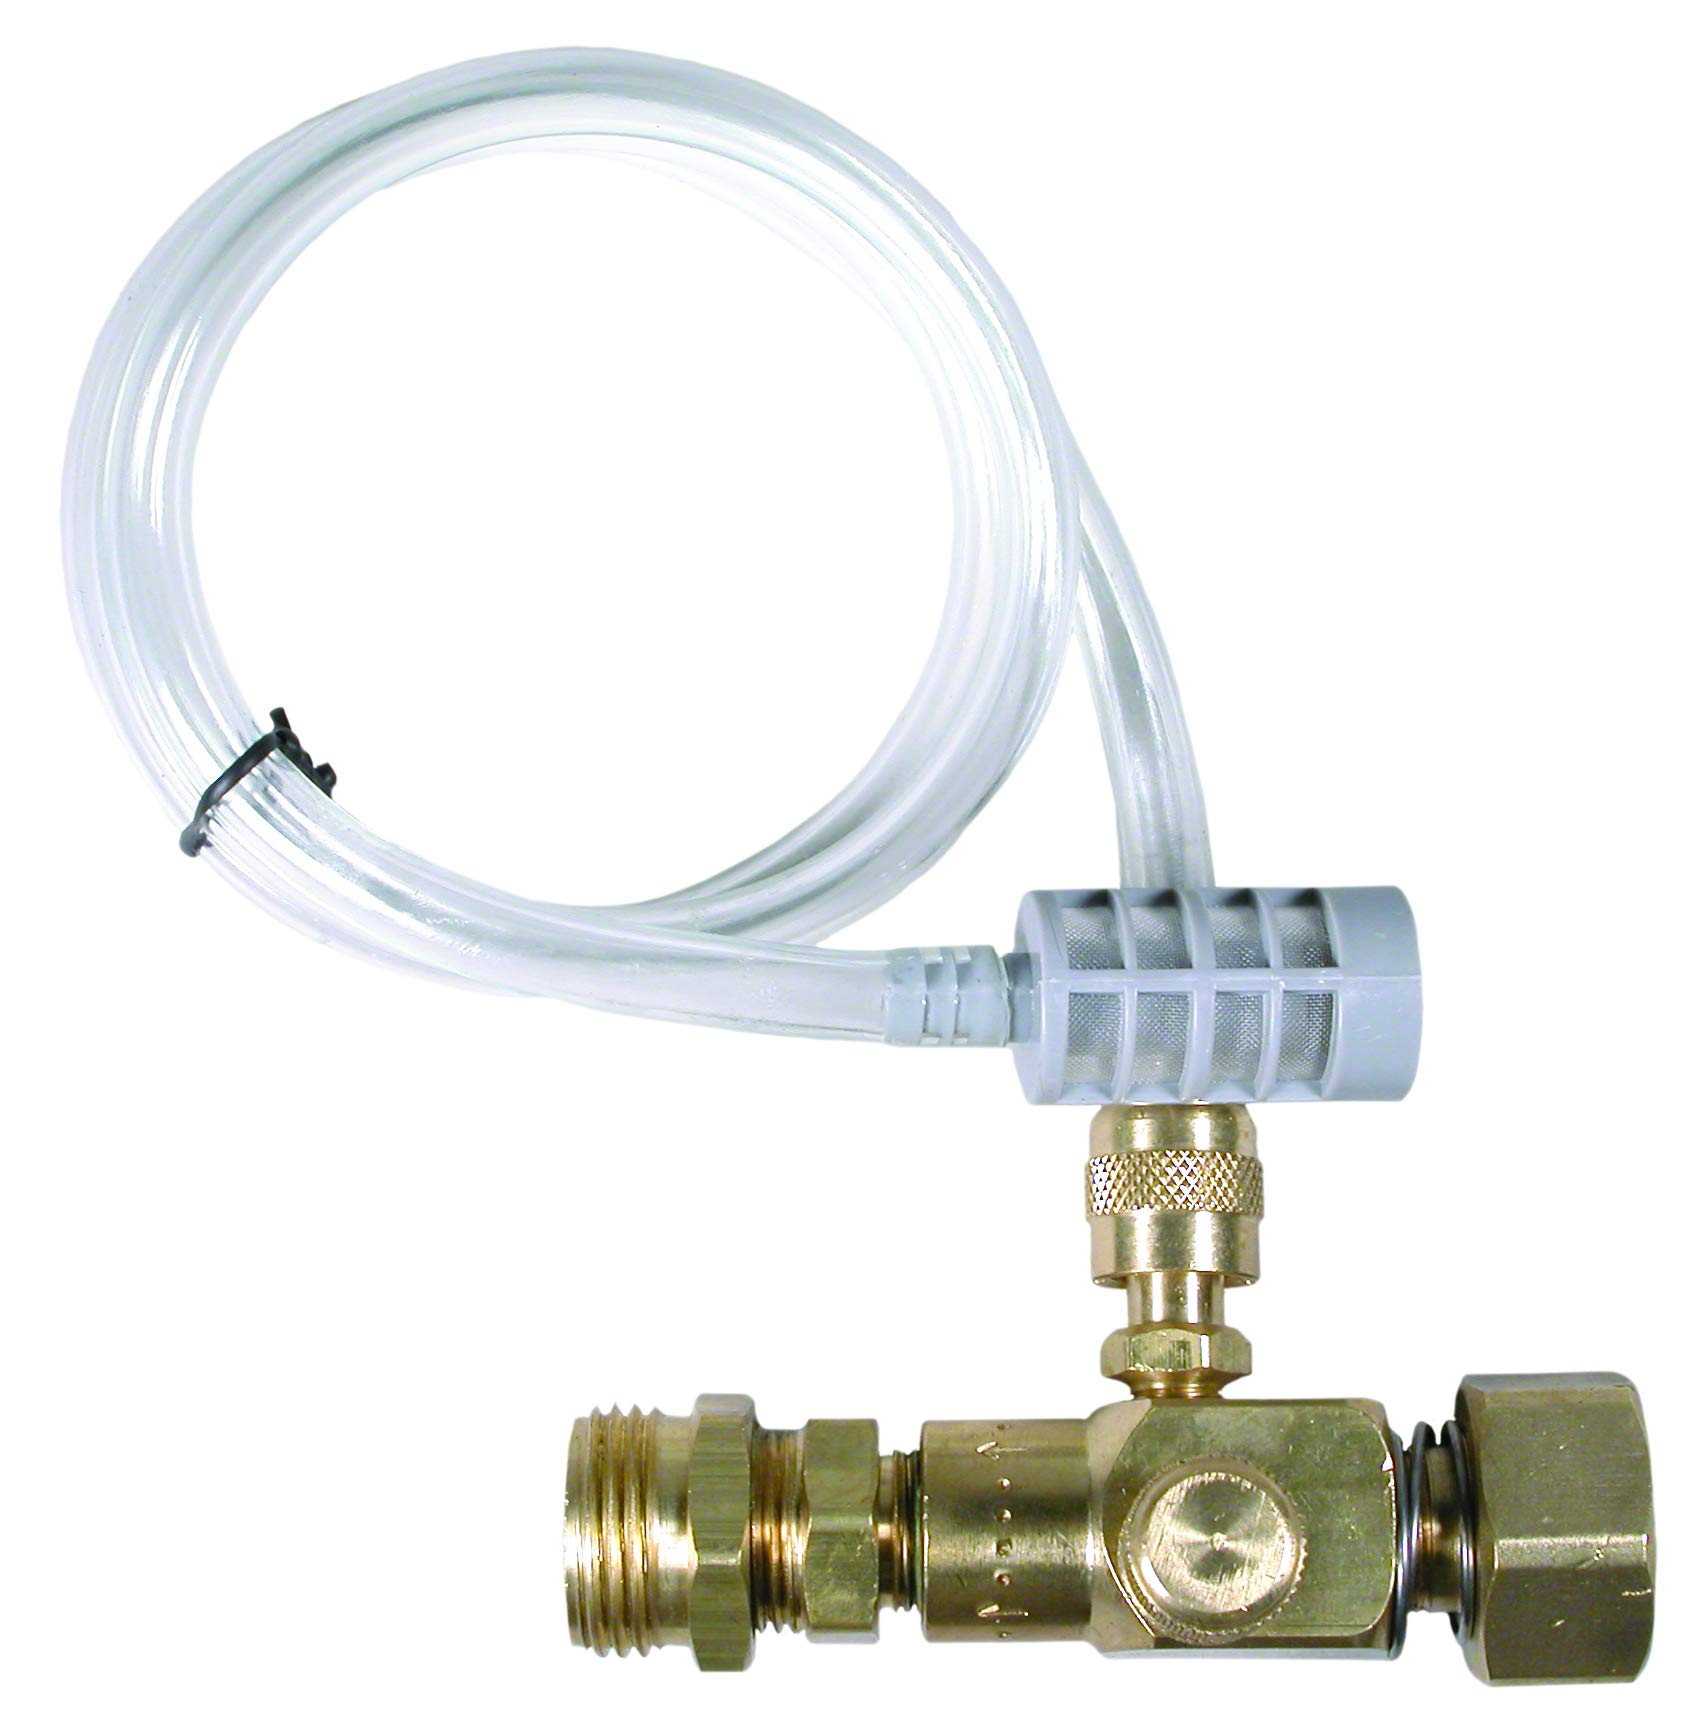 Valley Industries PK-85400003 Up Stream Chemical Injector-High Pressure, 3500 PSI, 8.0GPM, Brass